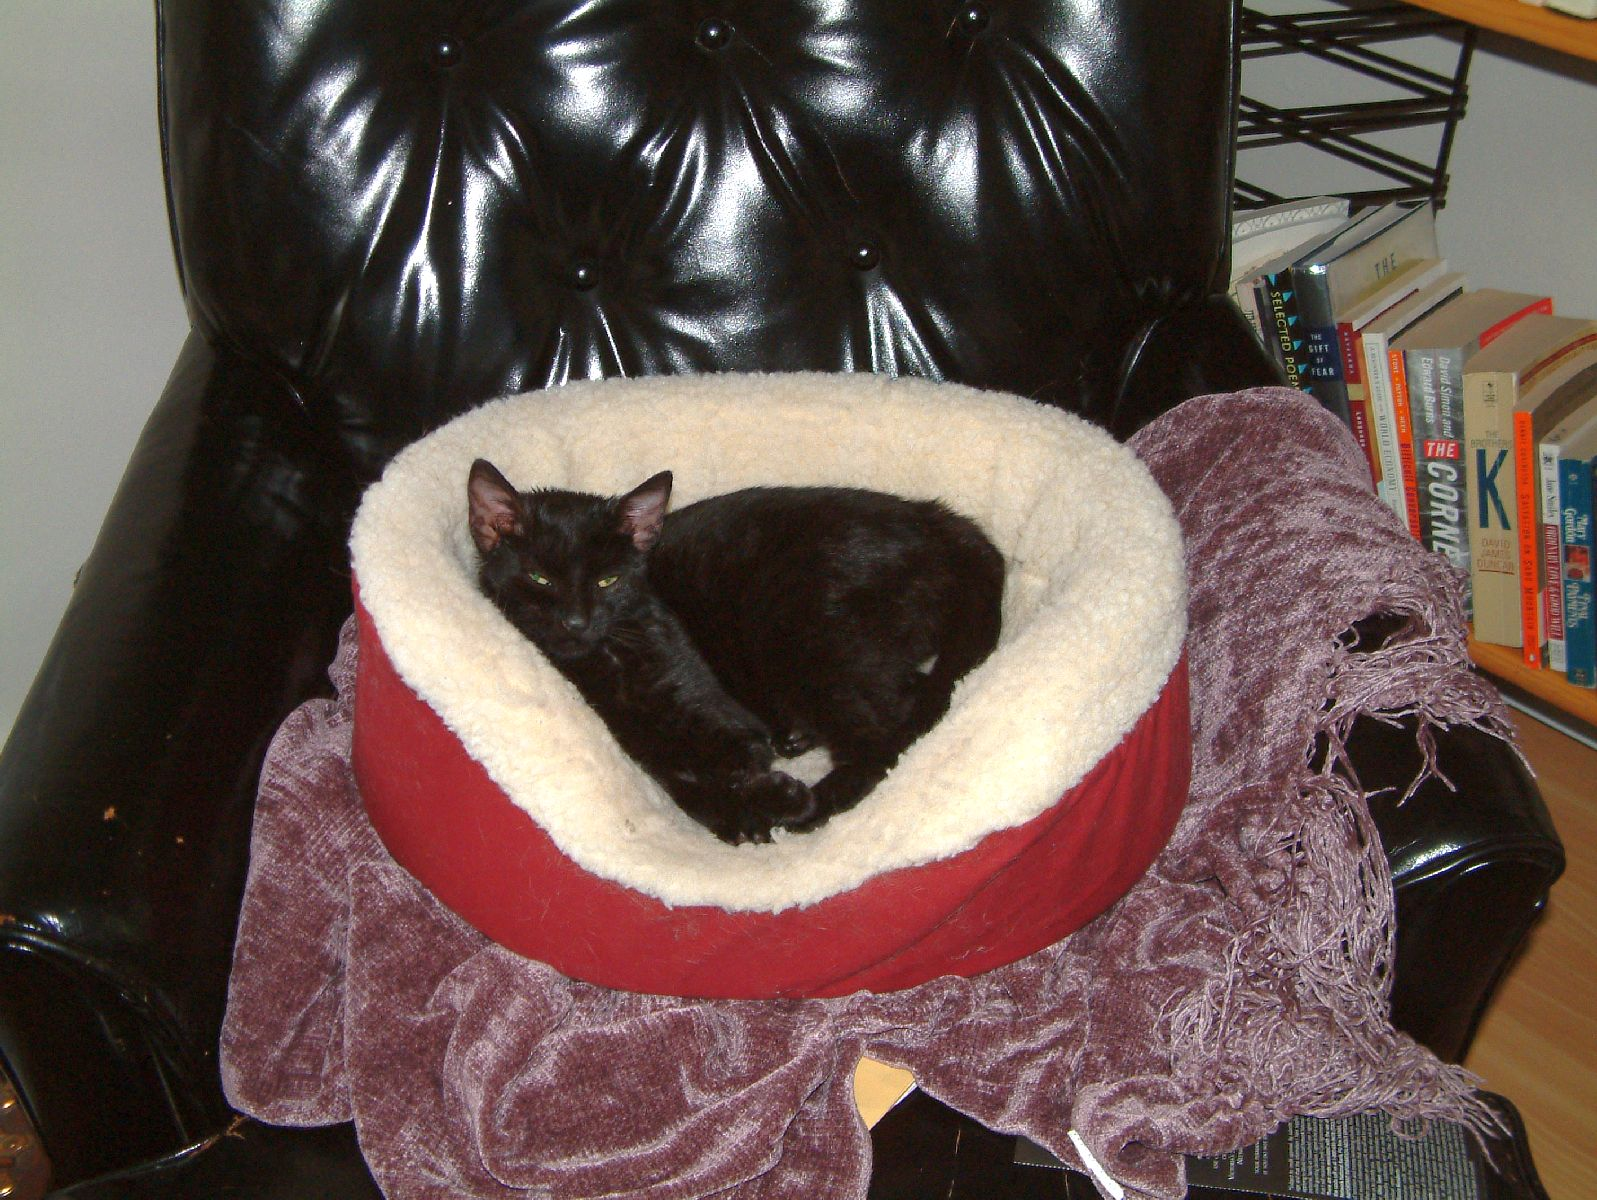 Bodhi in his bed on the black leather chair.